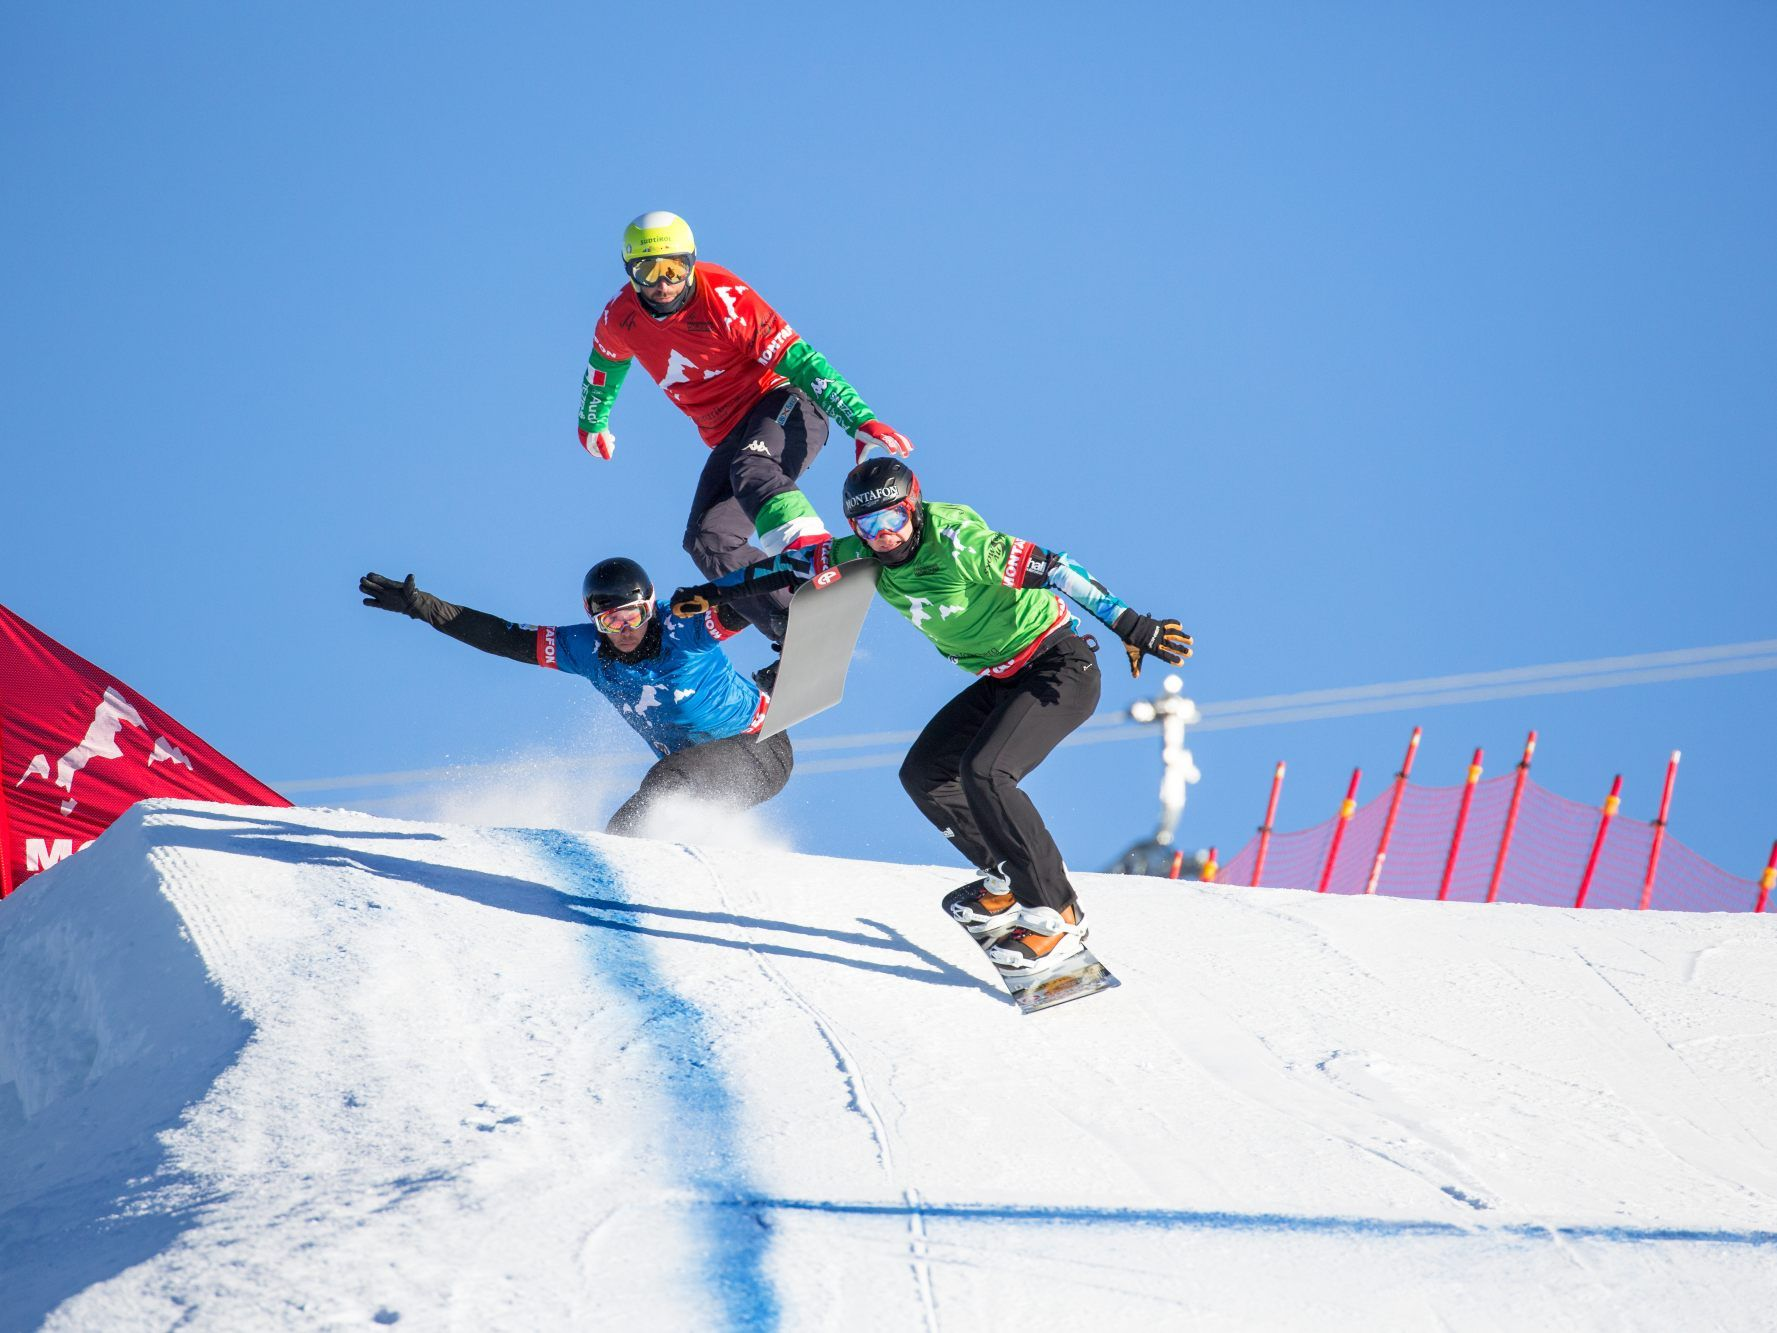 FIS Snowboard Cross Weltcup